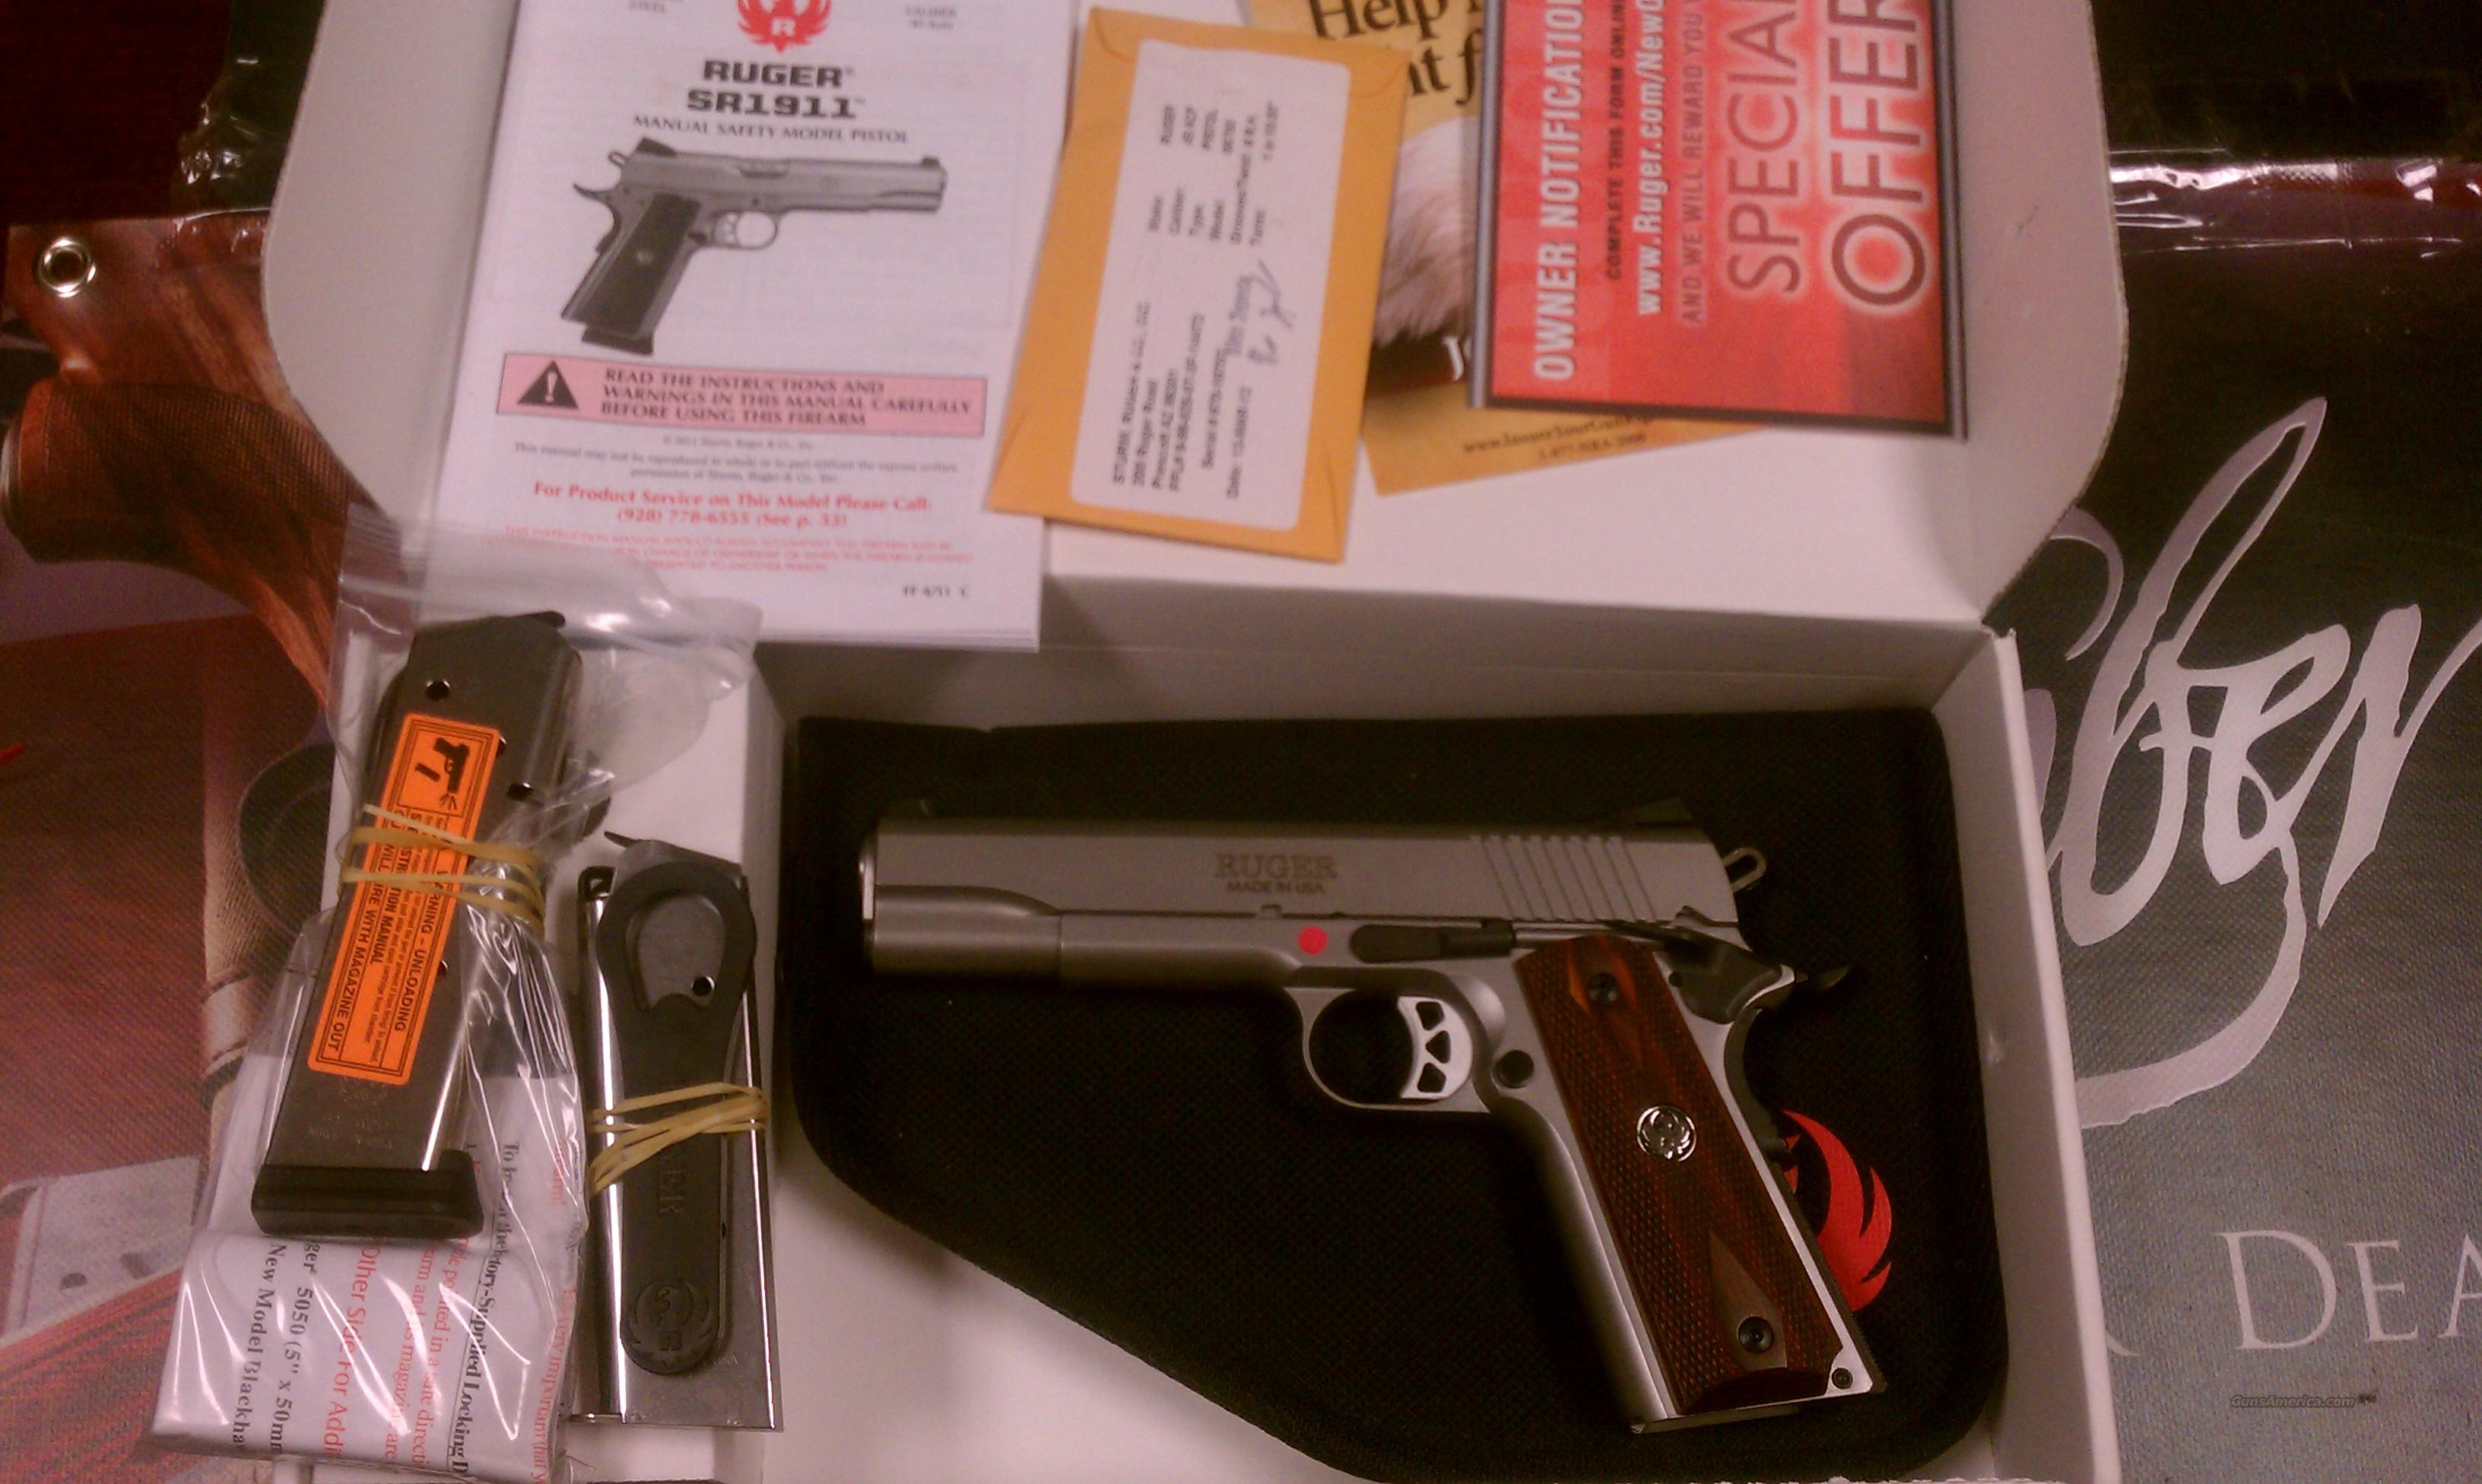 Ruger SR1911 .45 ACP Stainless  Guns > Pistols > Ruger Semi-Auto Pistols > SR9 & SR40